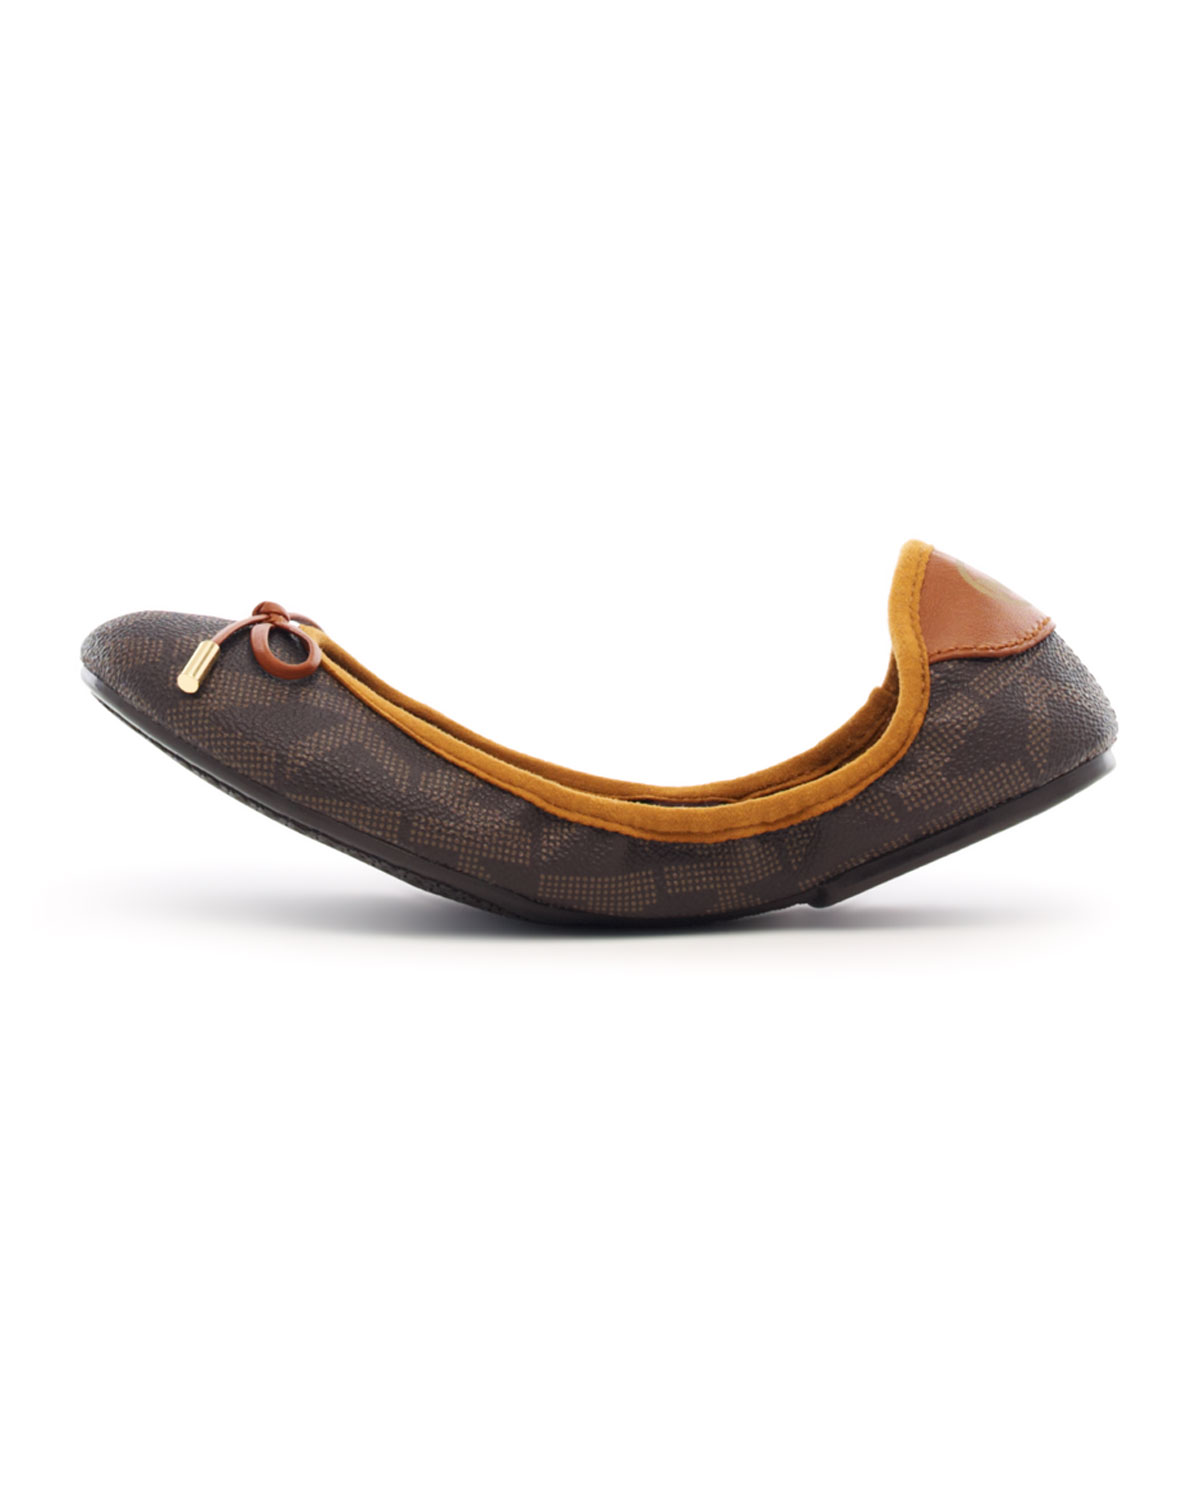 Brown Leather Ballerina Flat Shoes